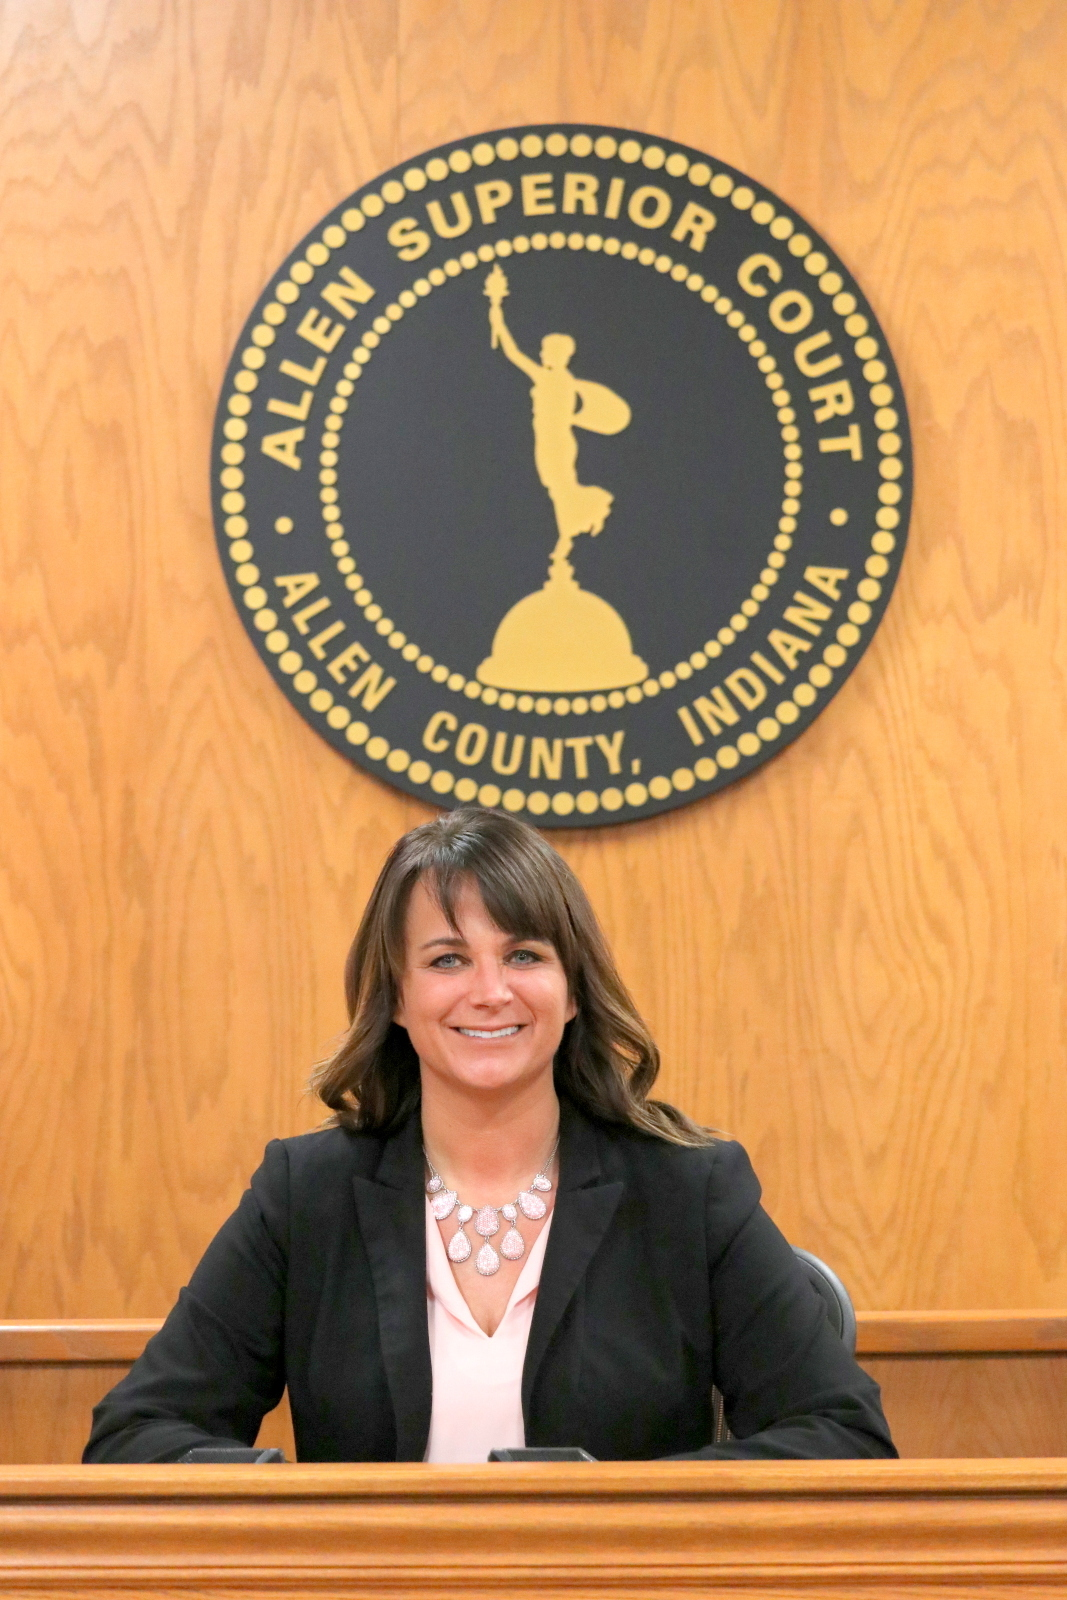 Honorable Andrea R. Trevino